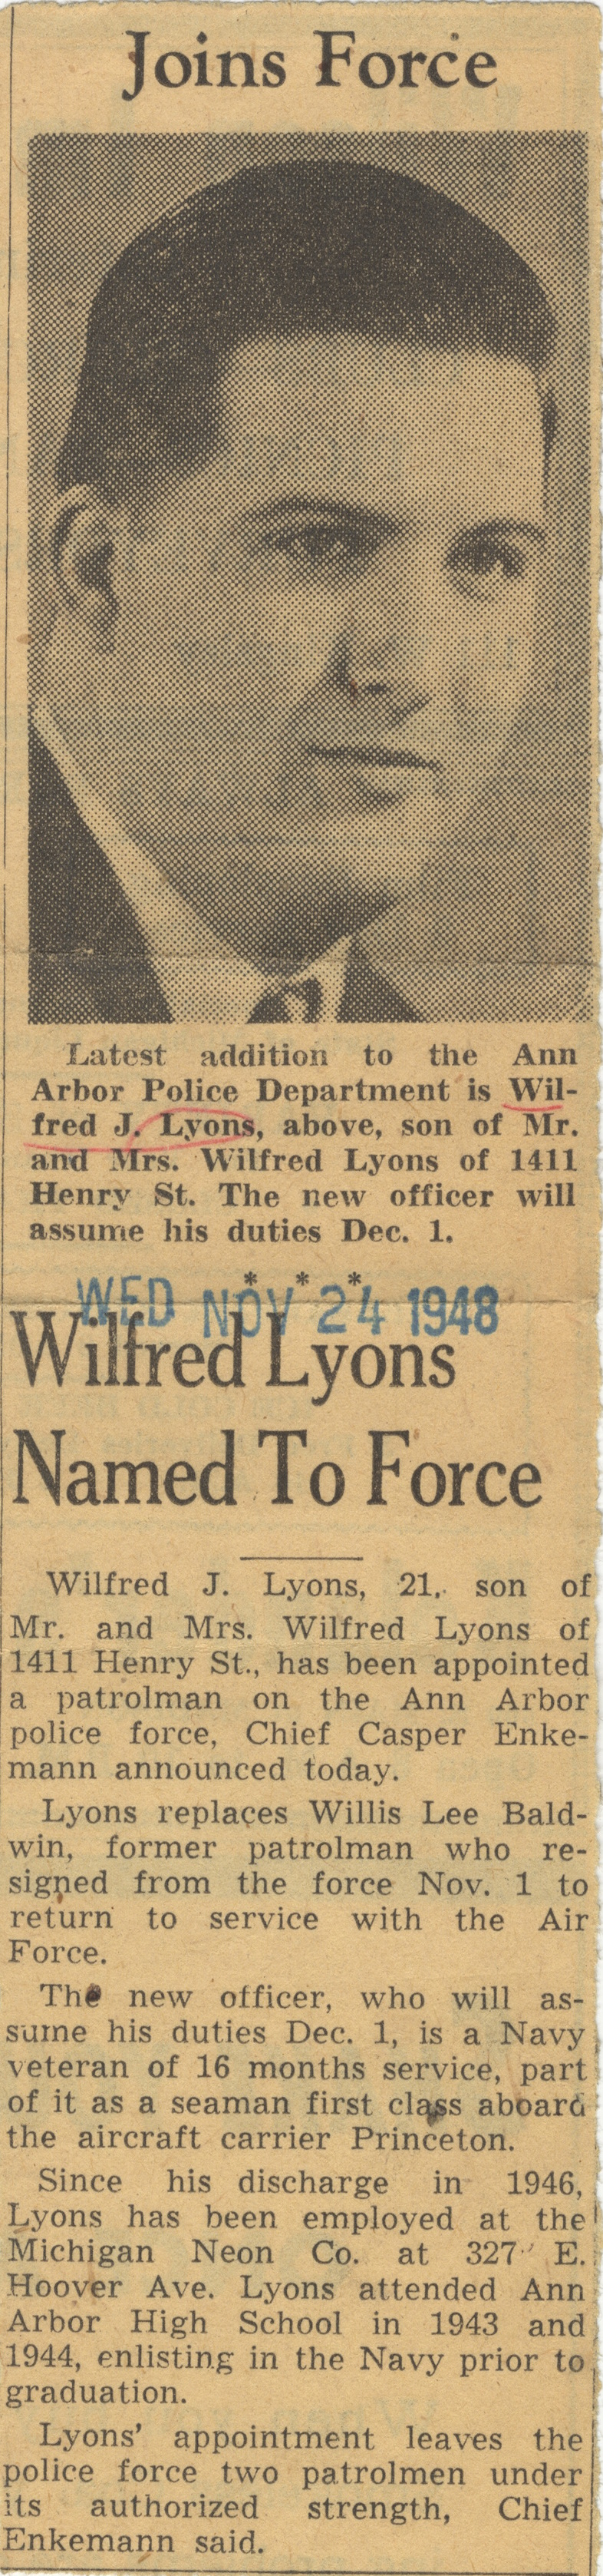 Wilfred Lyons Named To Force image